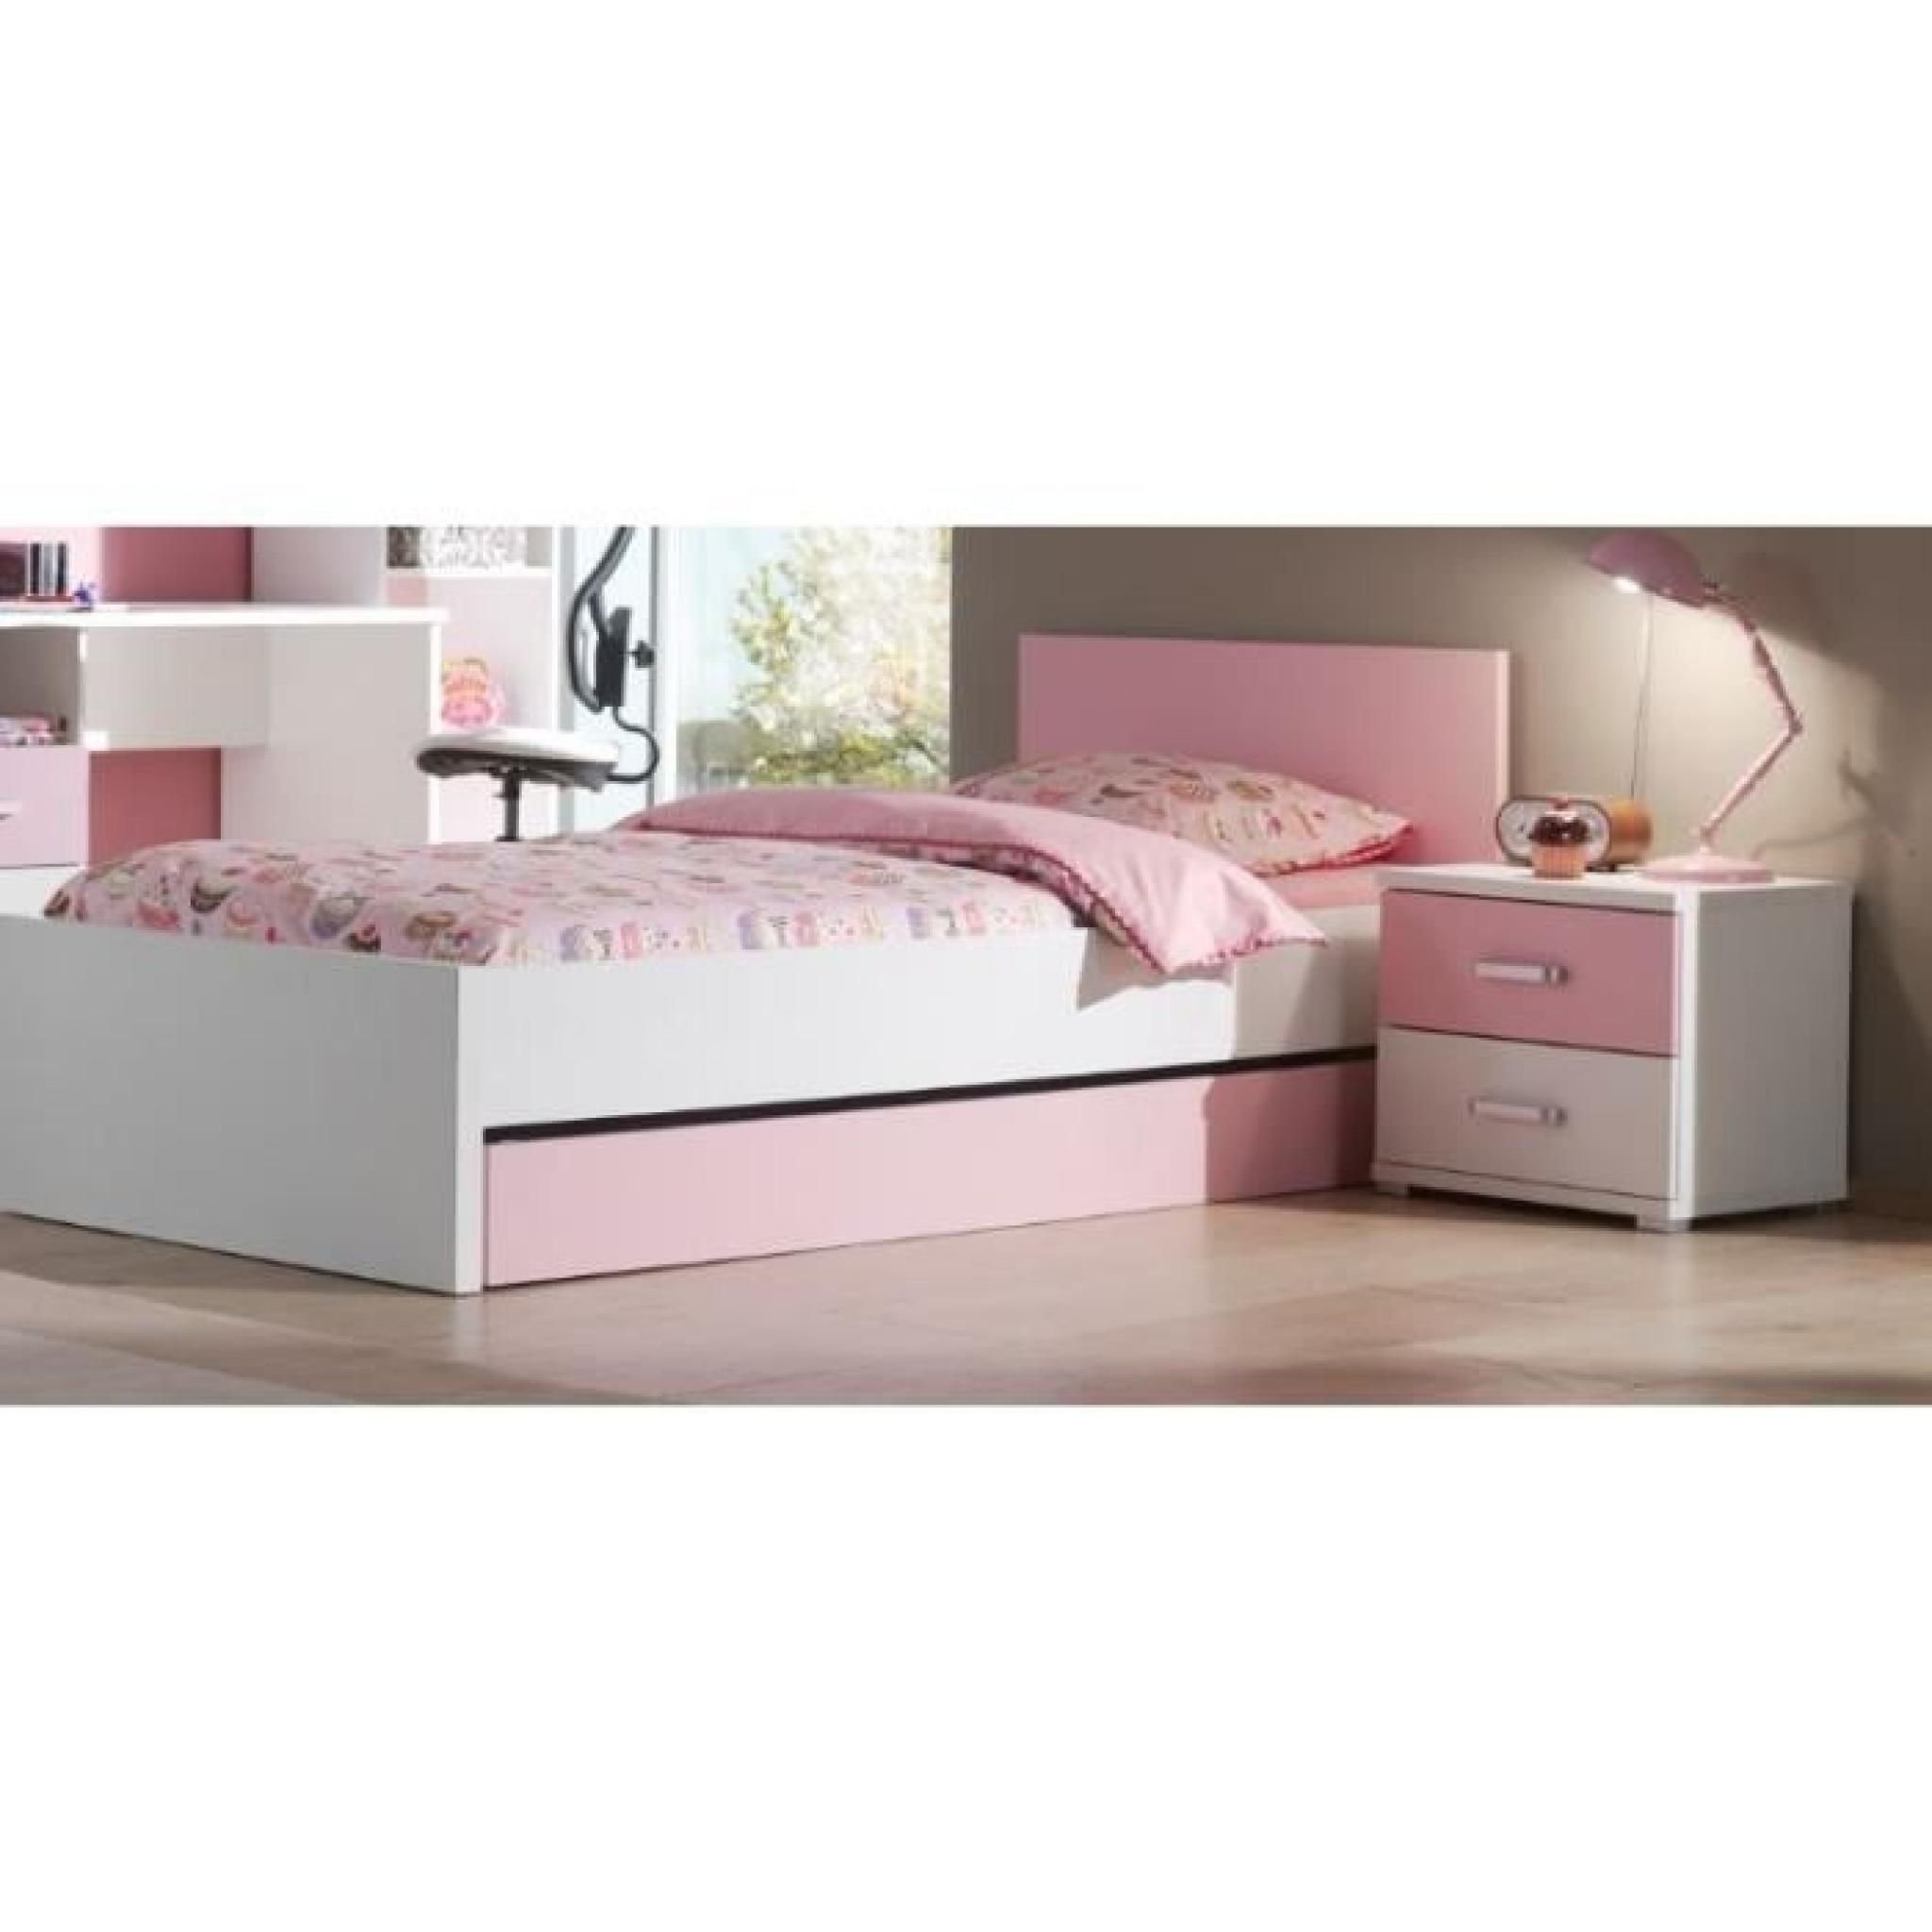 valentine lit enfant lit gigogne chevet blanc rose achat vente chambre complete pas cher. Black Bedroom Furniture Sets. Home Design Ideas